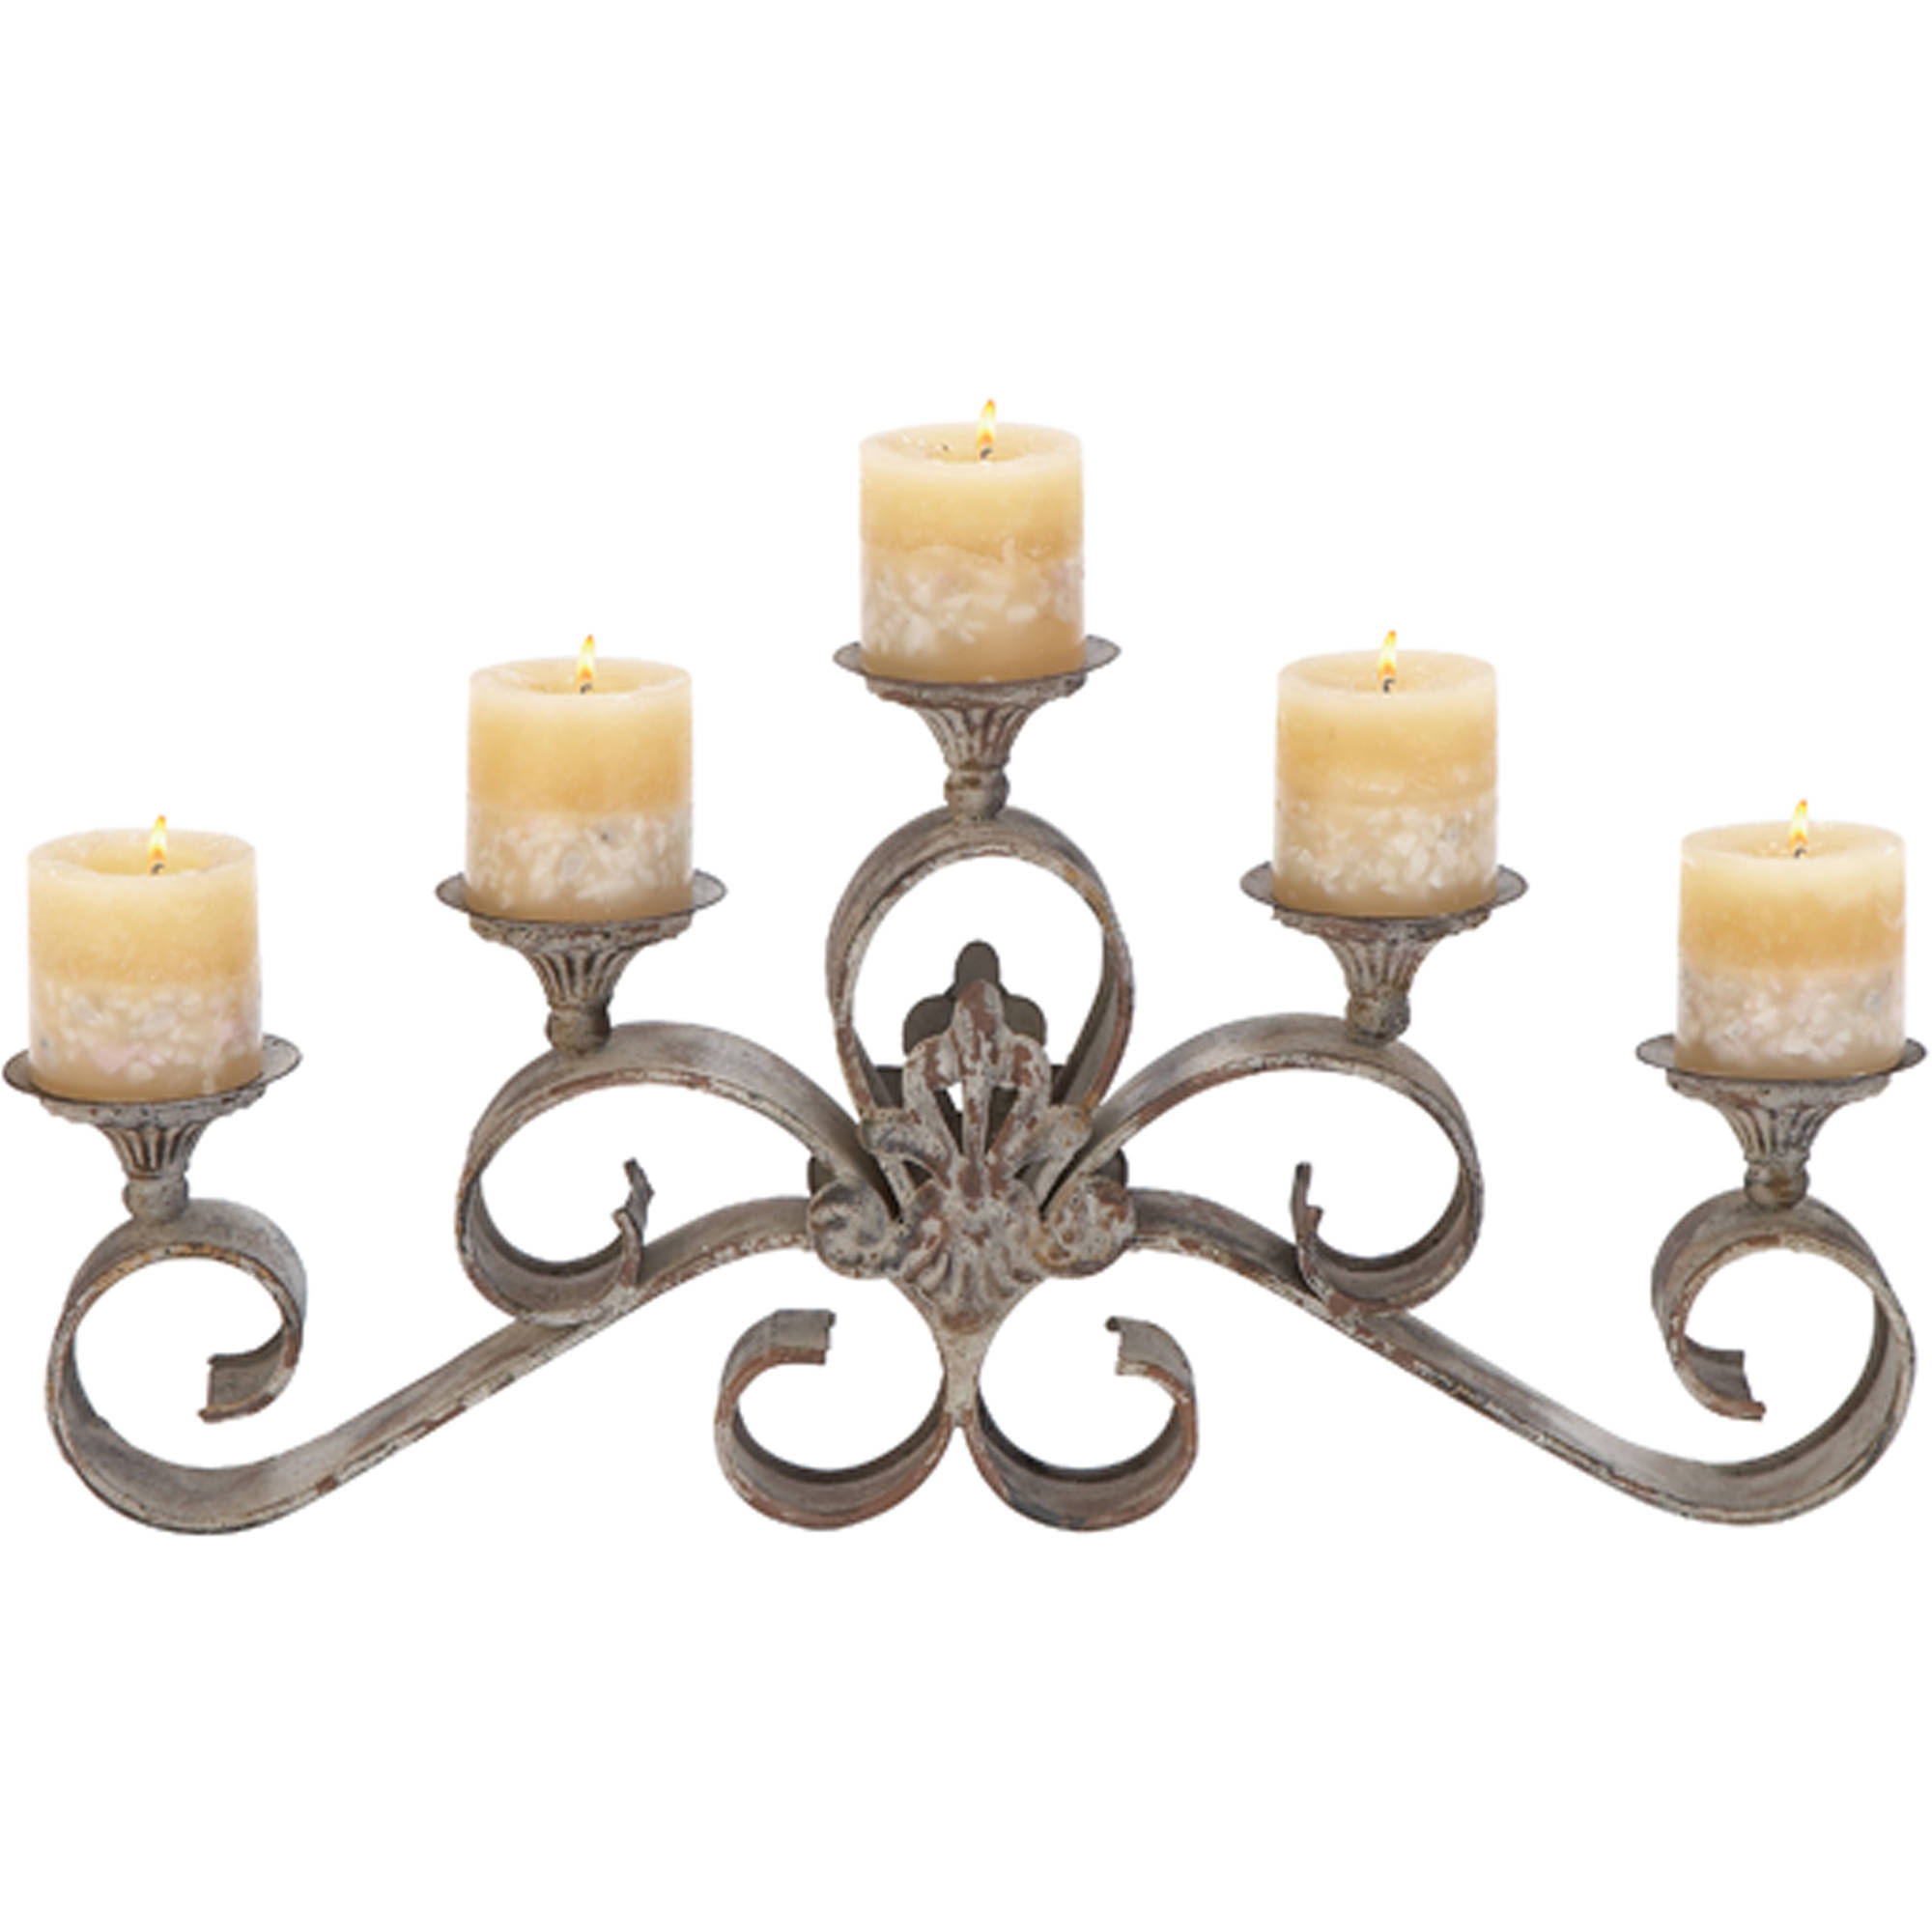 52917 Metal Candle Holder by Benzara